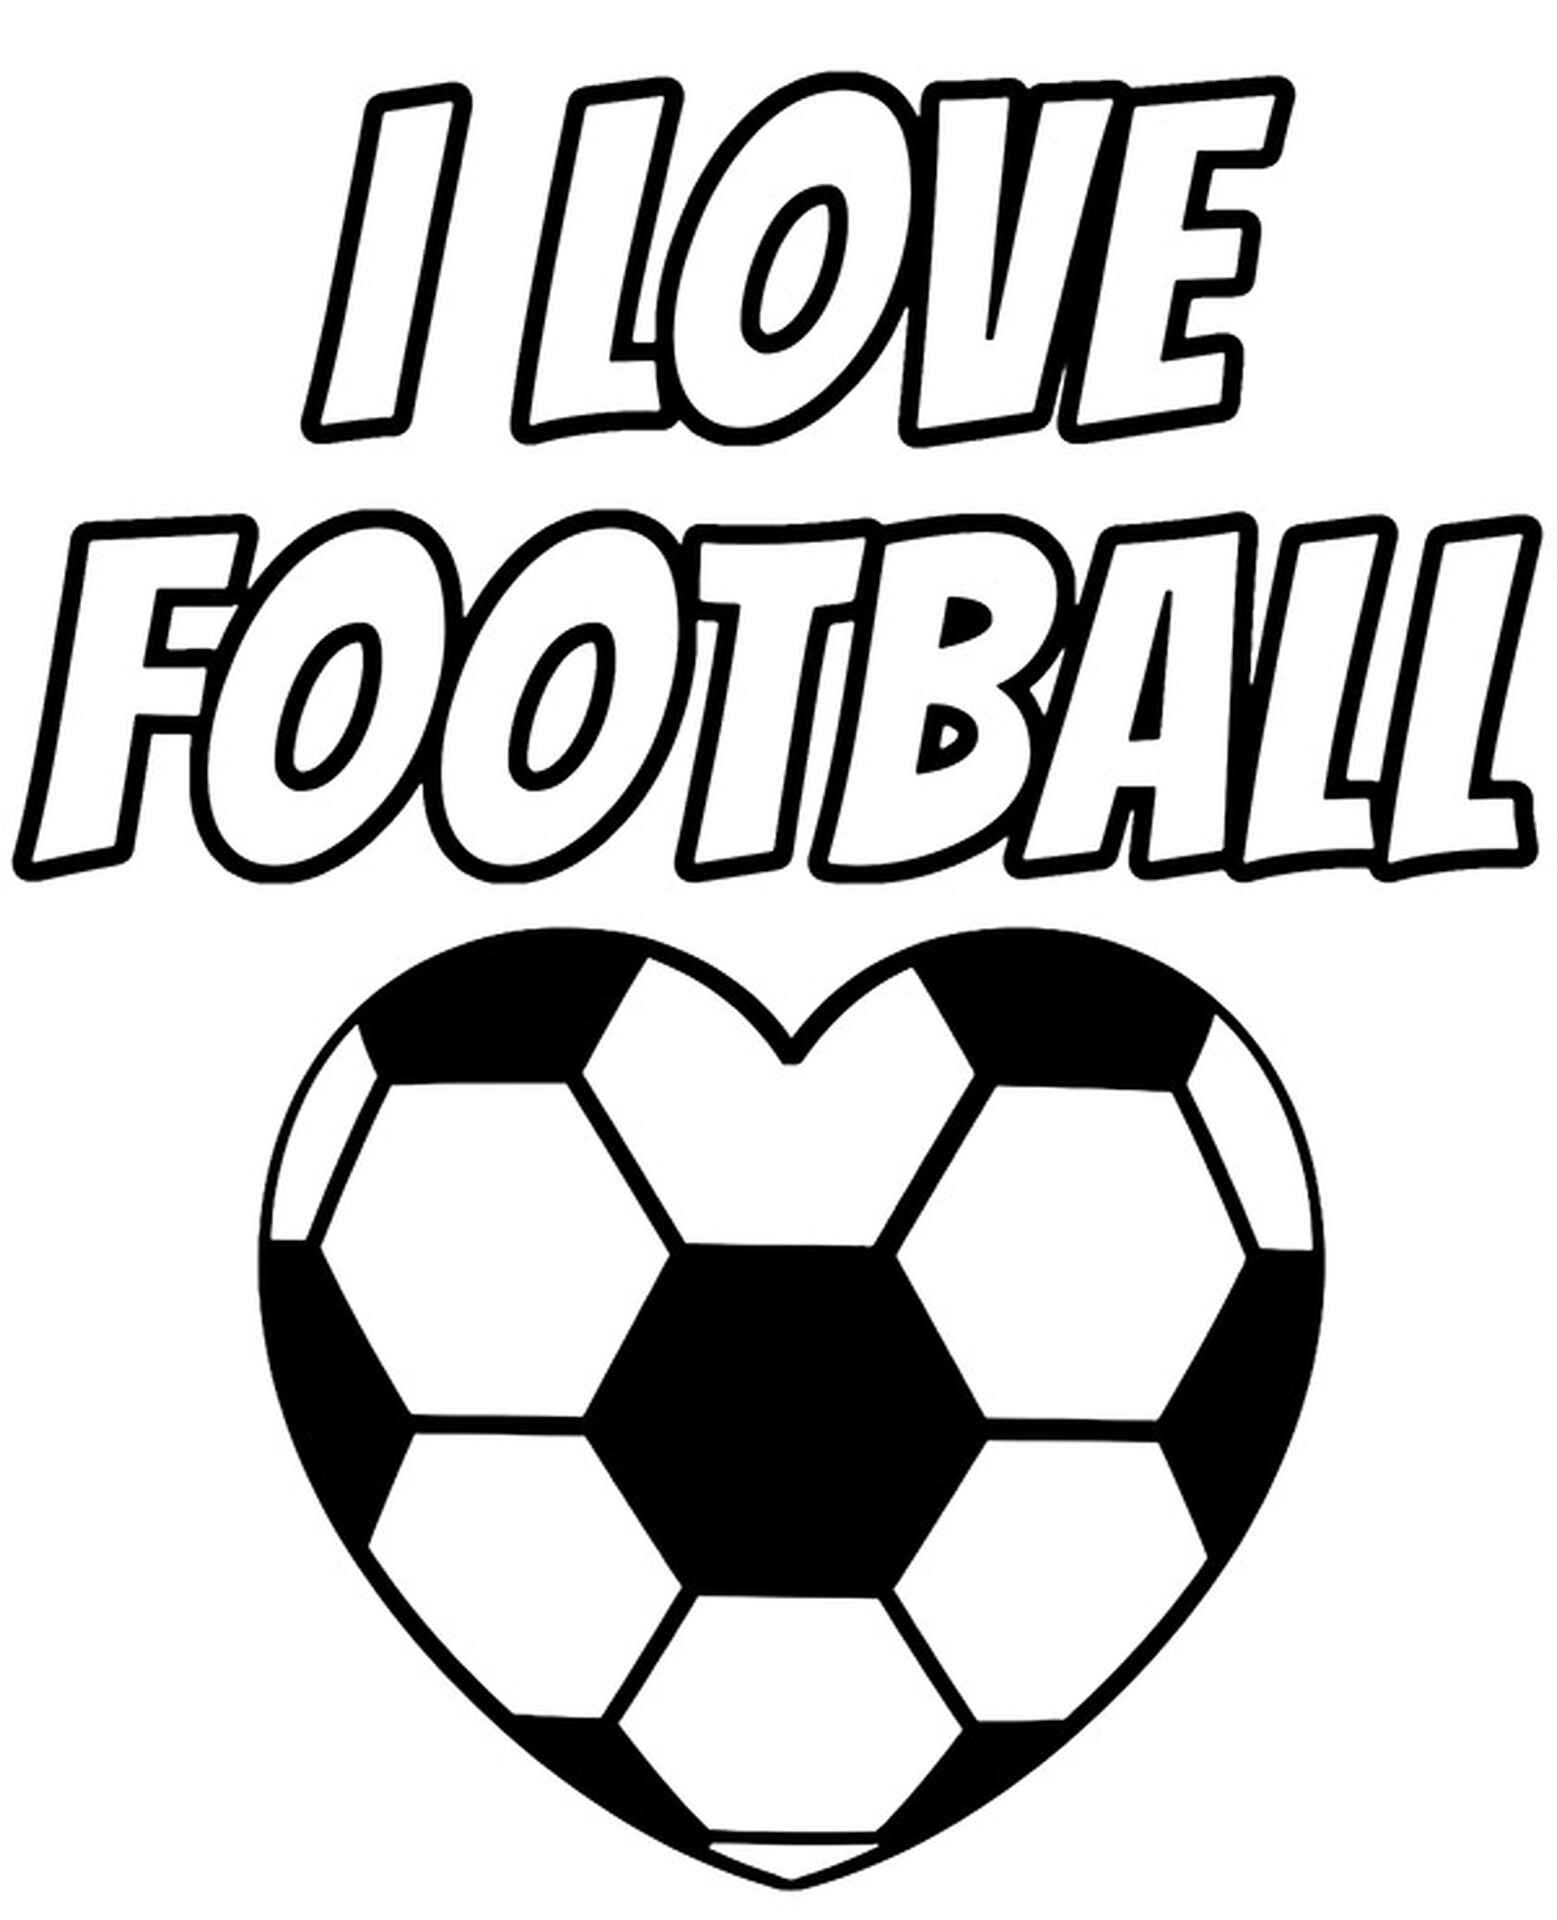 Heart Shaped Soccer Ball Coloring Page